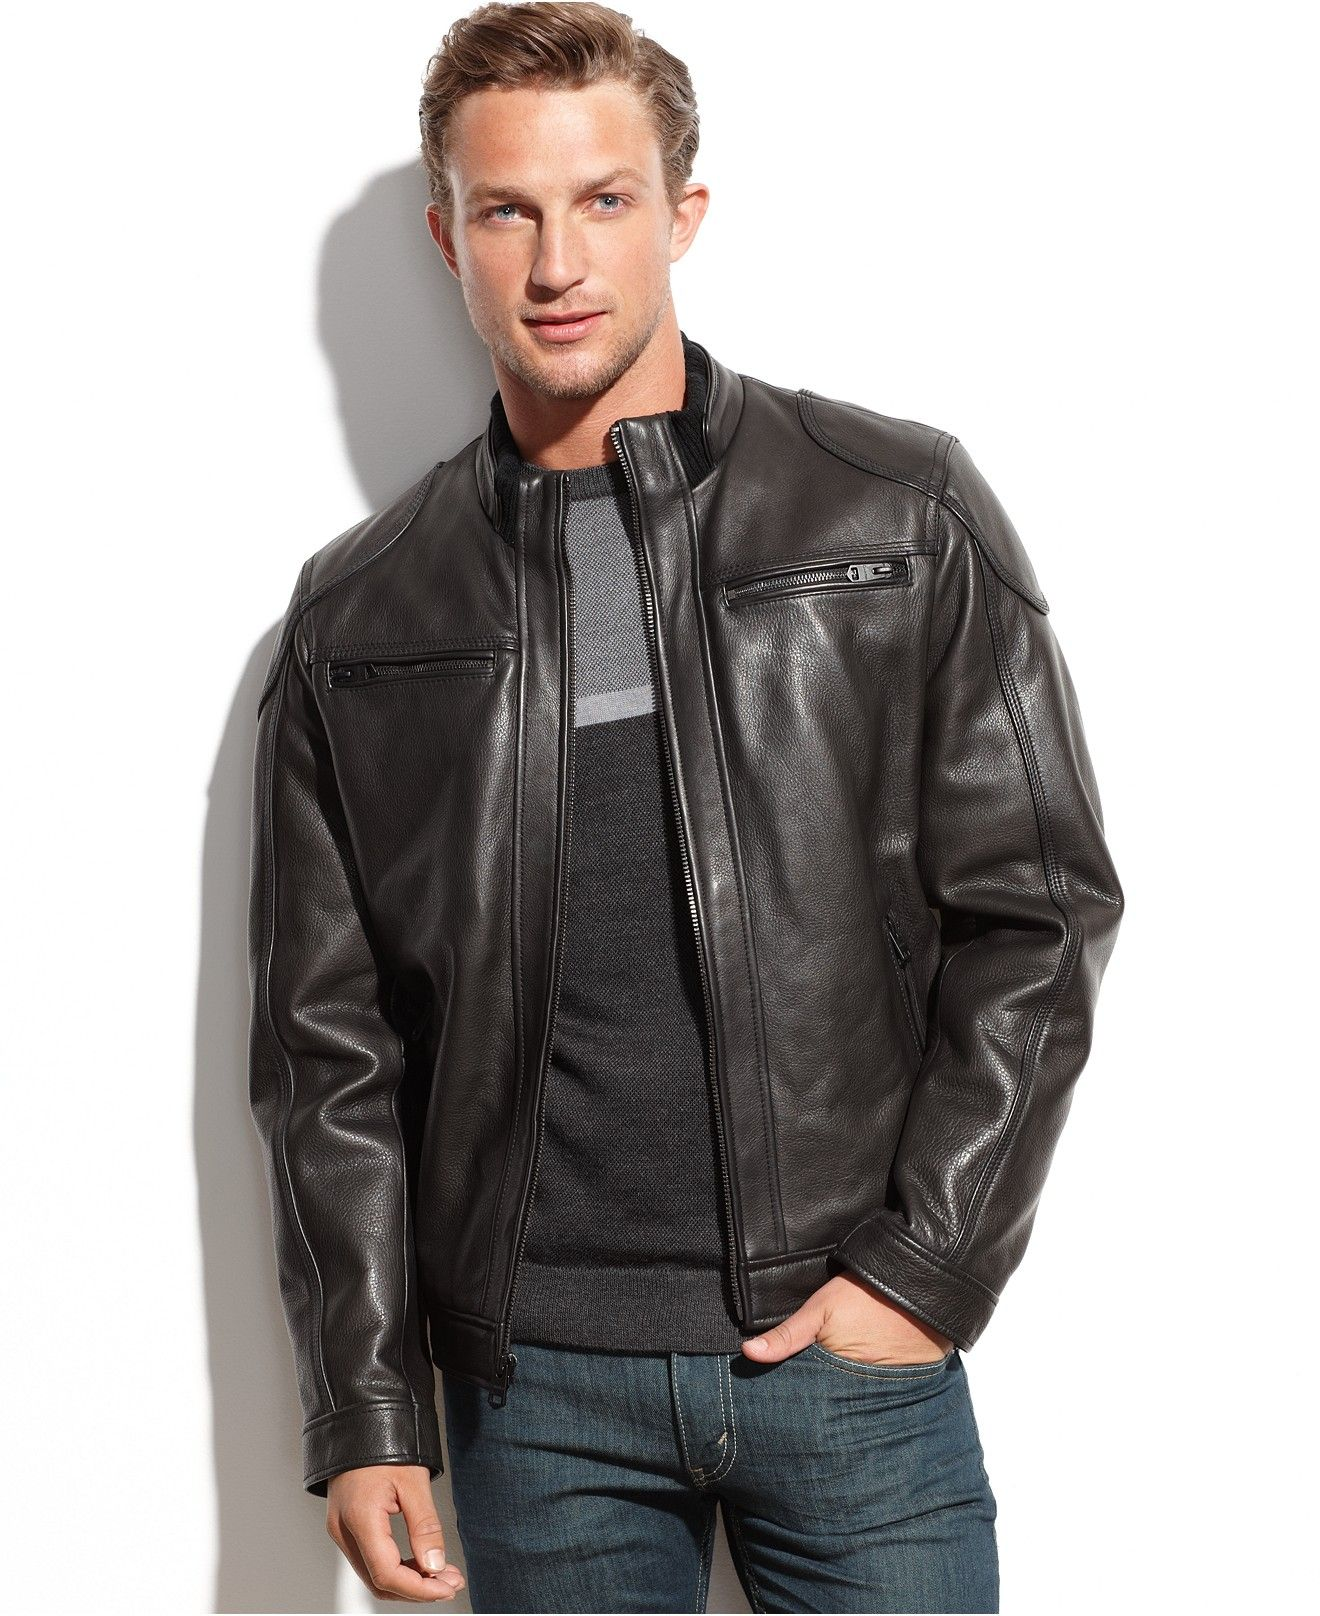 Calvin Klein Leather Moto Jacket Coats & Jackets Men